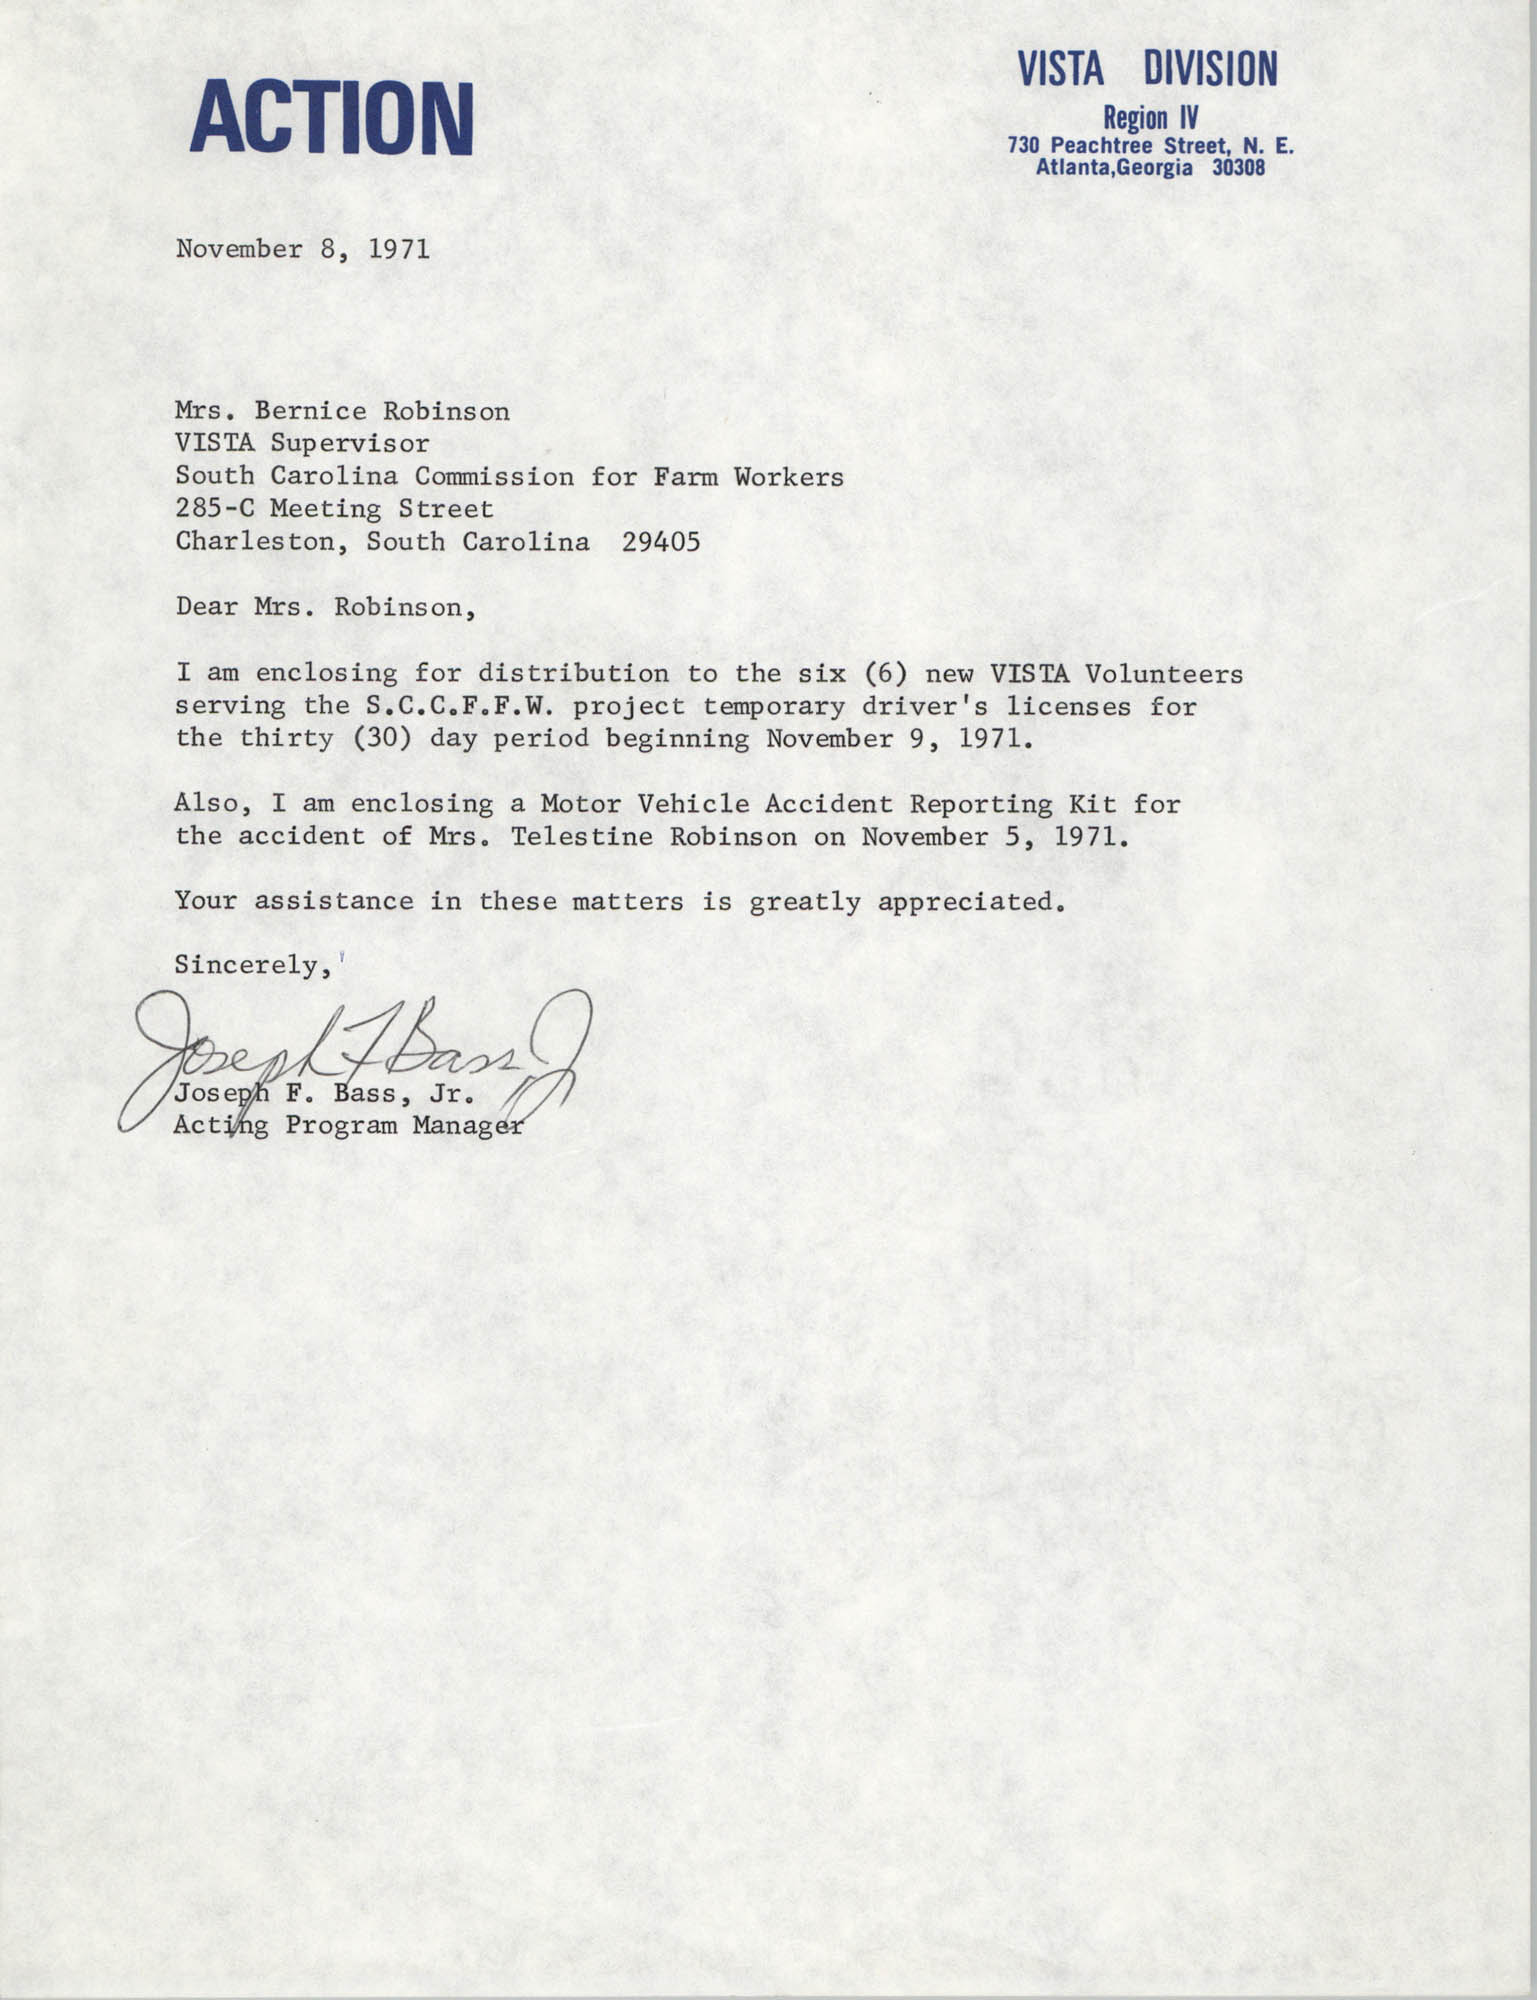 Letter from Joseph F. Bass, Jr. to Bernice Robinson, November 8, 1971